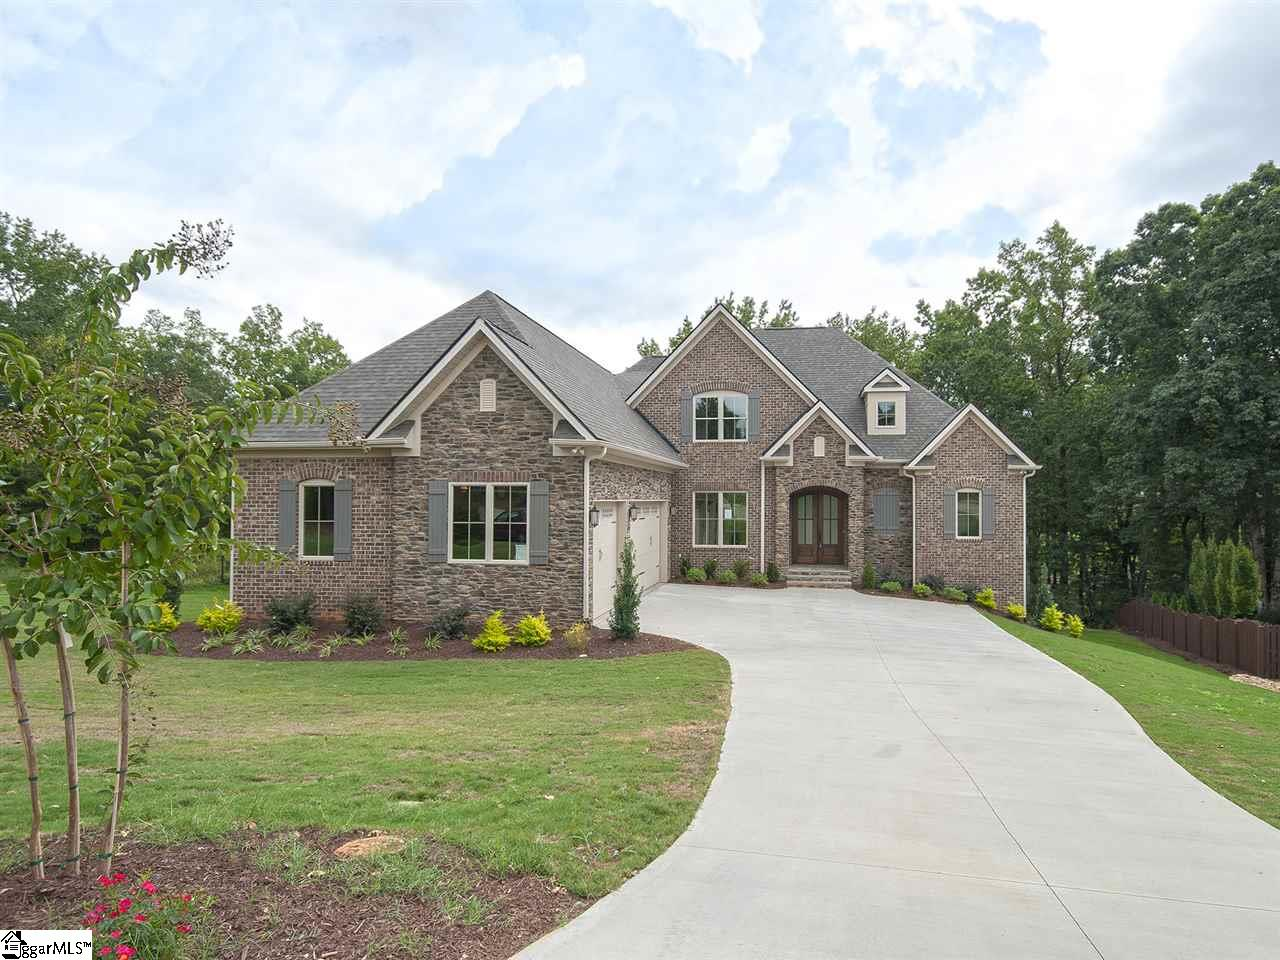 54 Fox hunt Lane, Greer, SC 29651